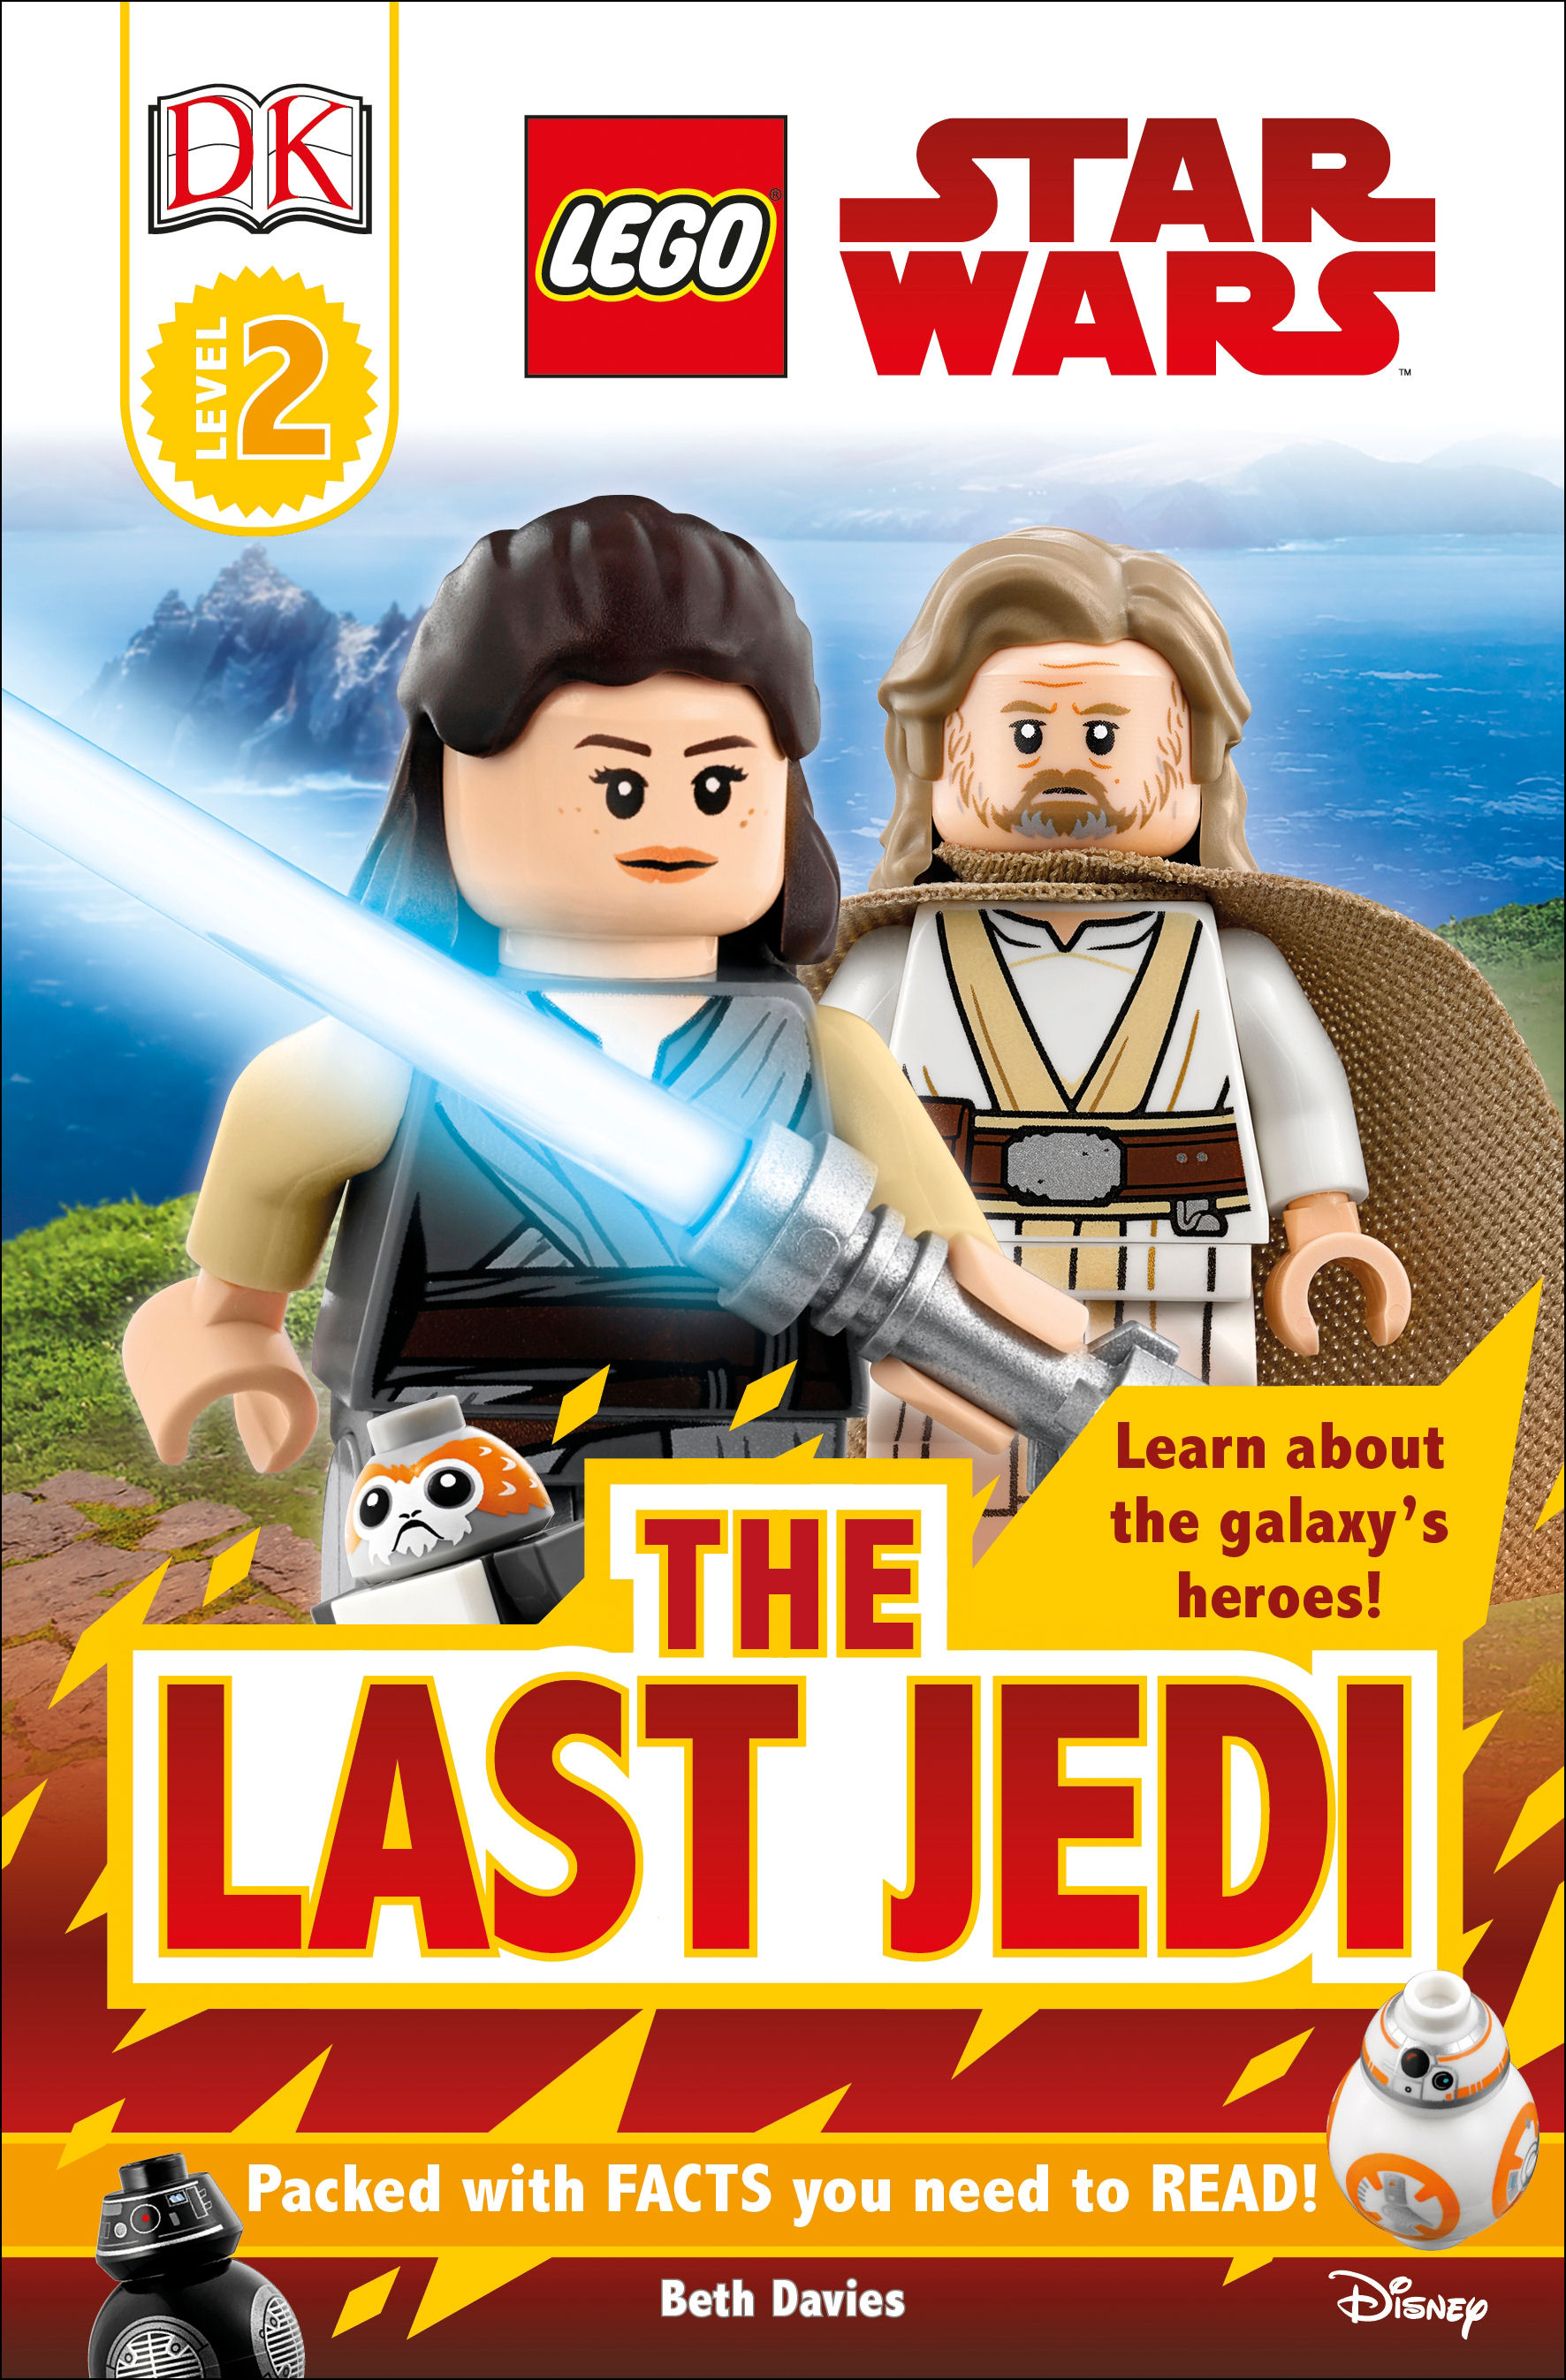 DK Readers L2: LEGO Star Wars: The Last Jedi